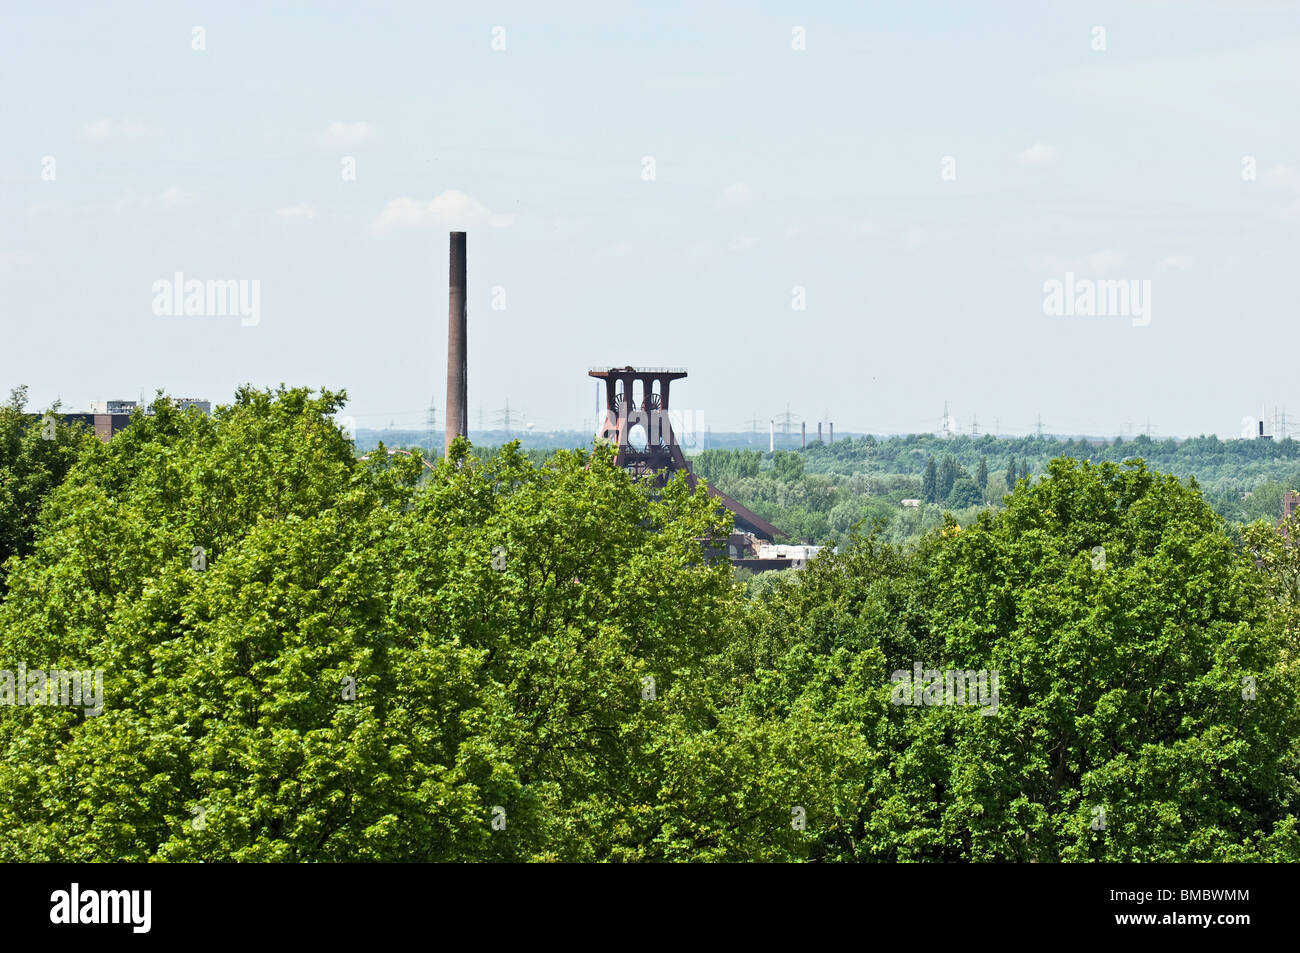 Zeche Zollverein Schachtzeichen Zollverein coal mine shaft sign European Capital of Culture 2010 - Stock Image